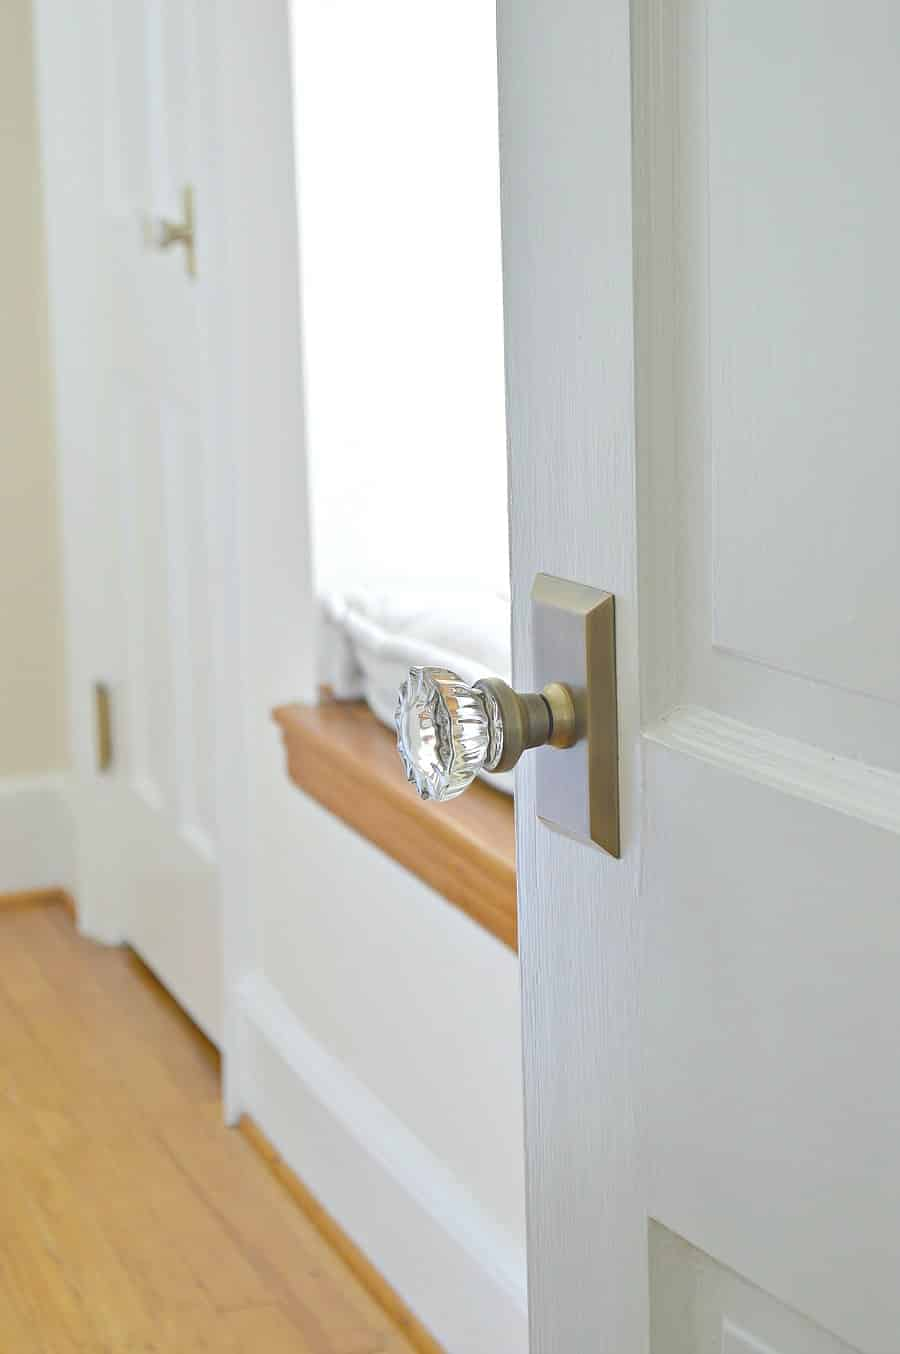 Replacing Old Door Knobs And Hinges The Best Kept Secret